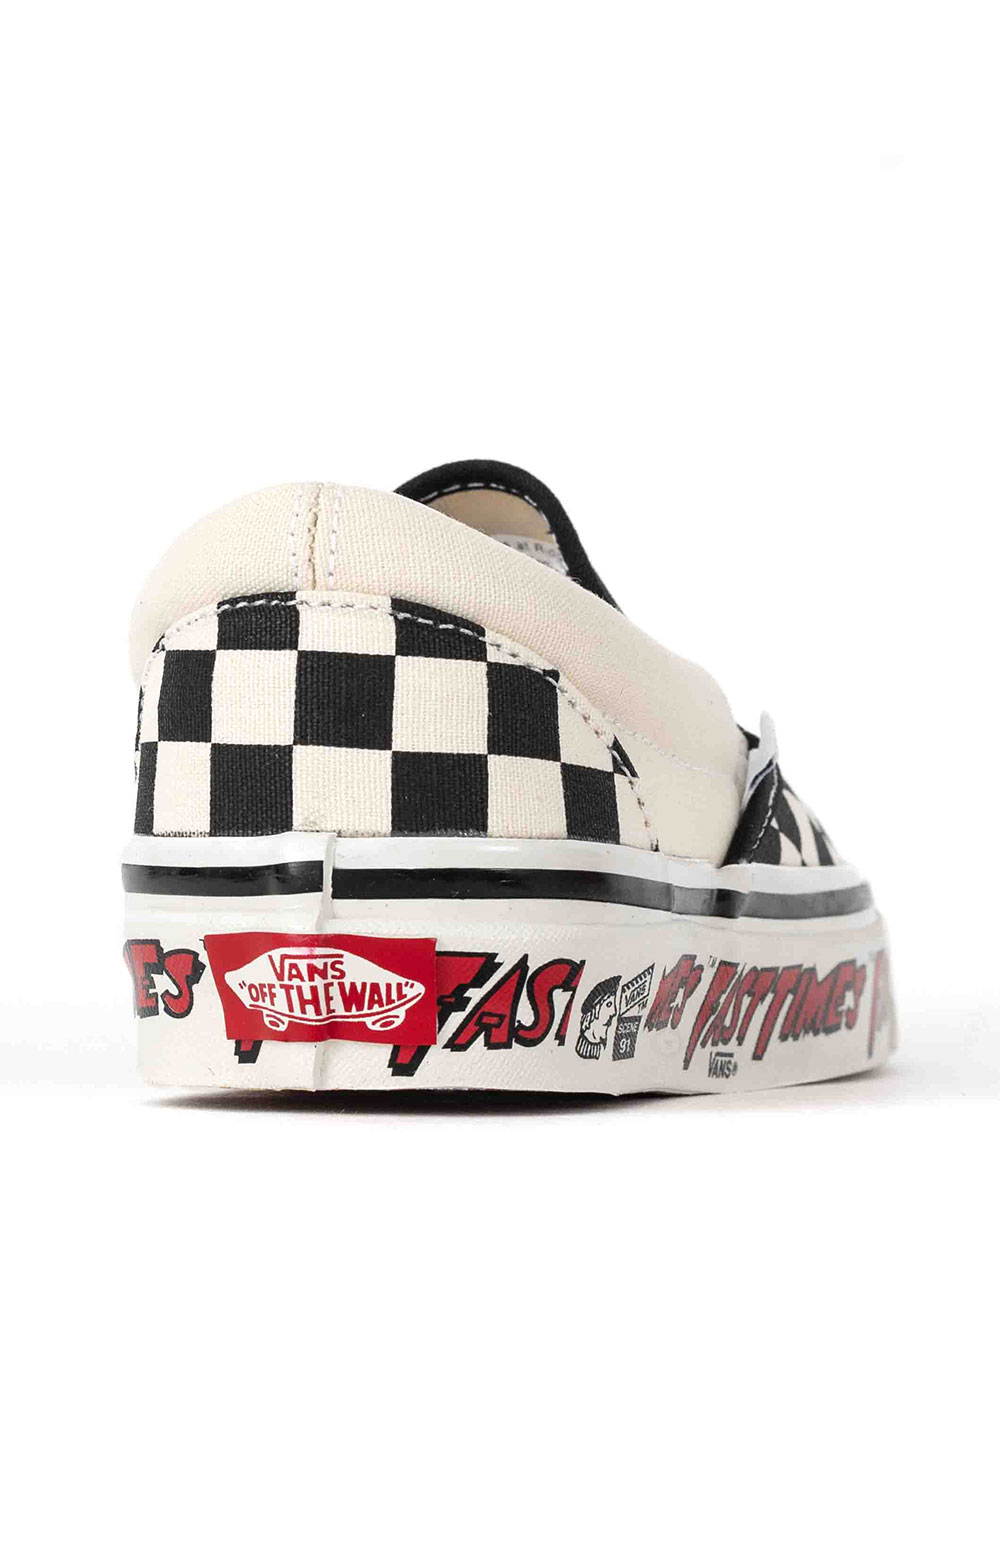 (JEXWVP) Anaheim Factory Classic Slip-On 98 DX Shoes - OG Fast Times  5